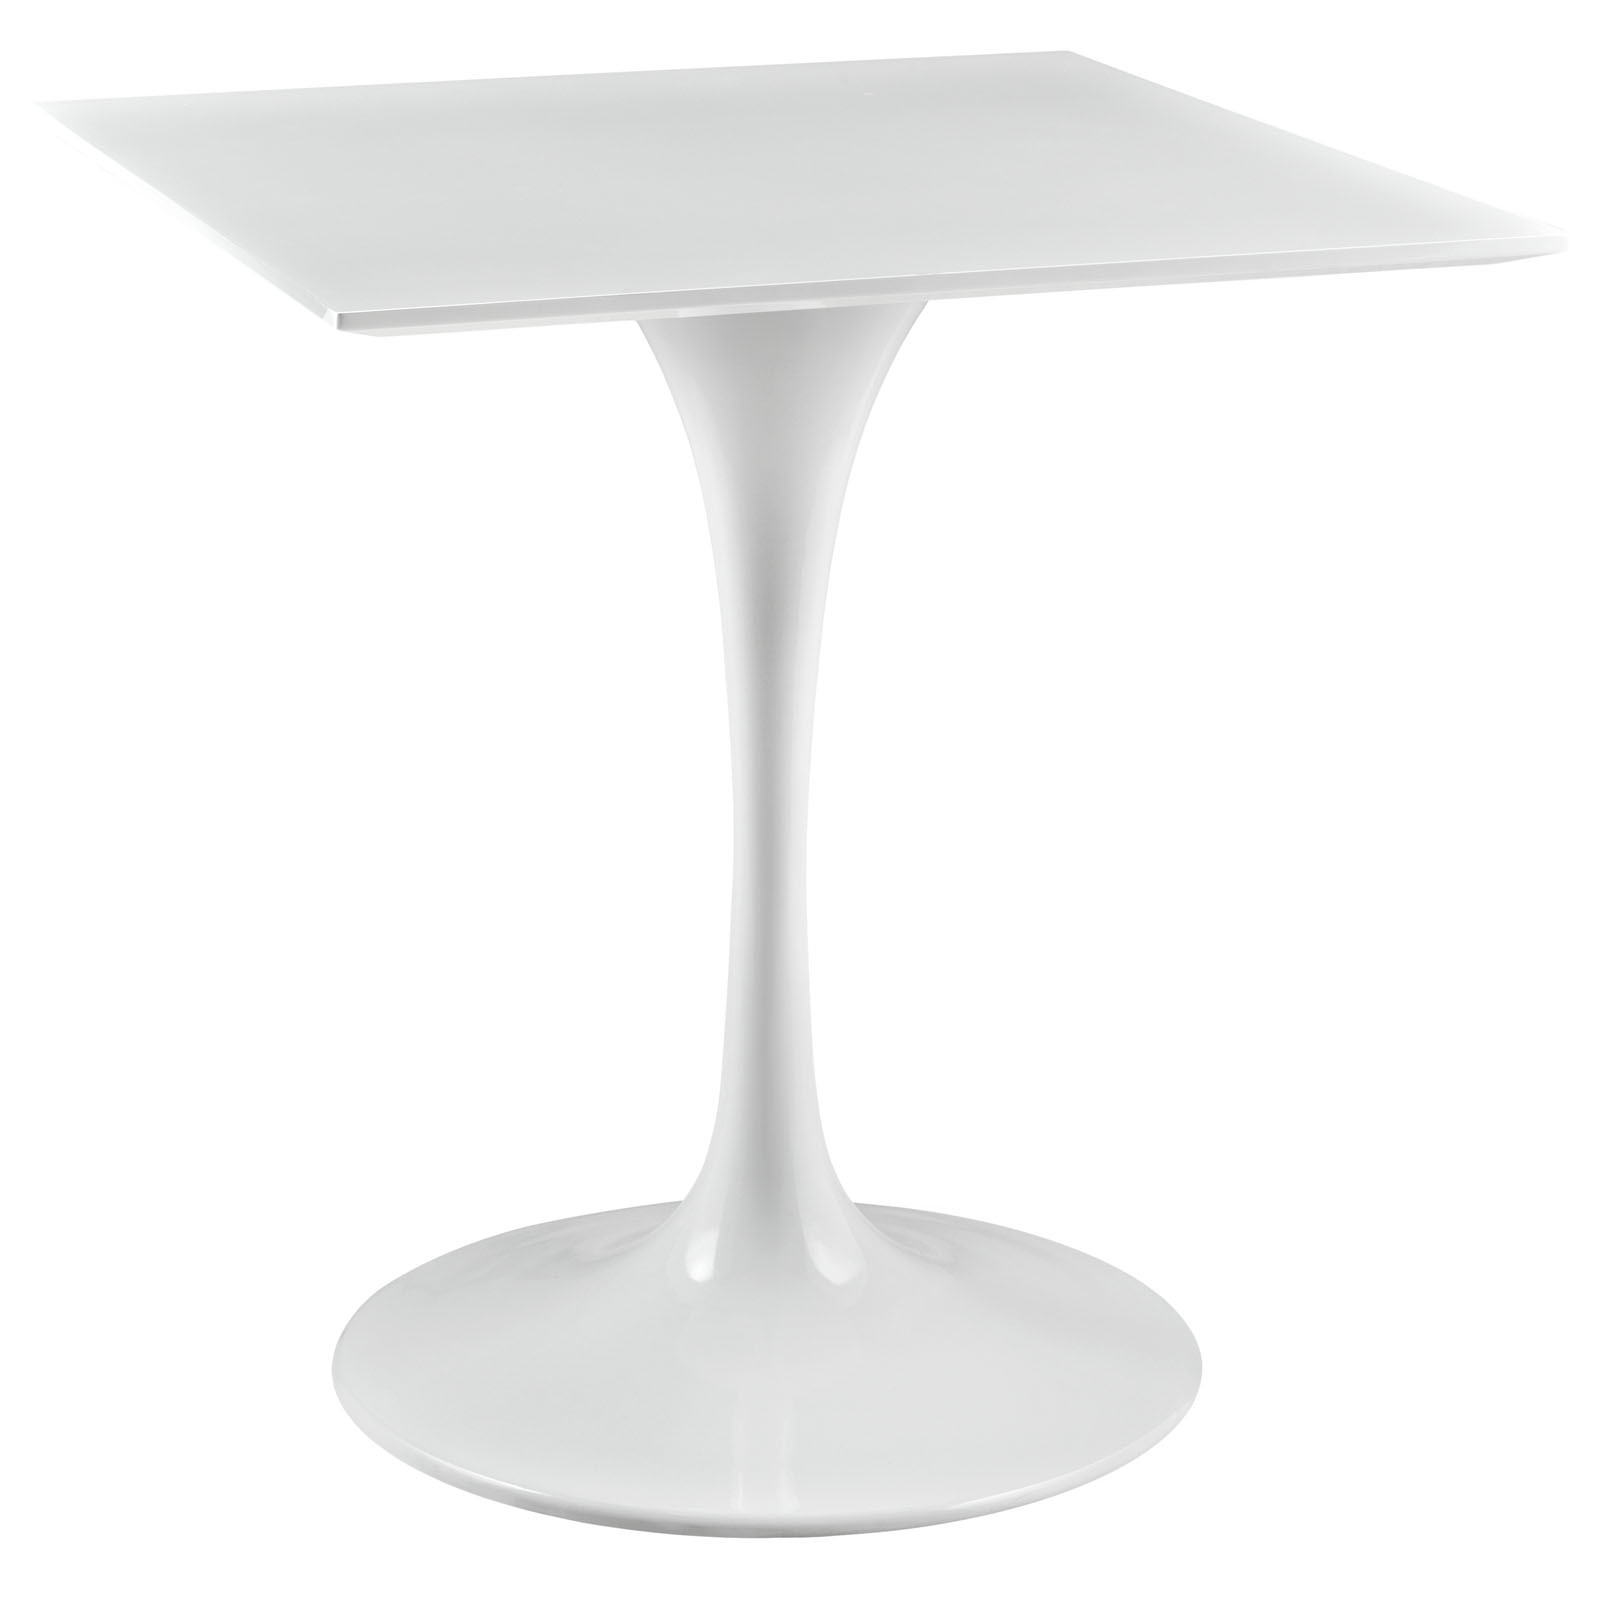 28-white-squre-tulip-table.jpg